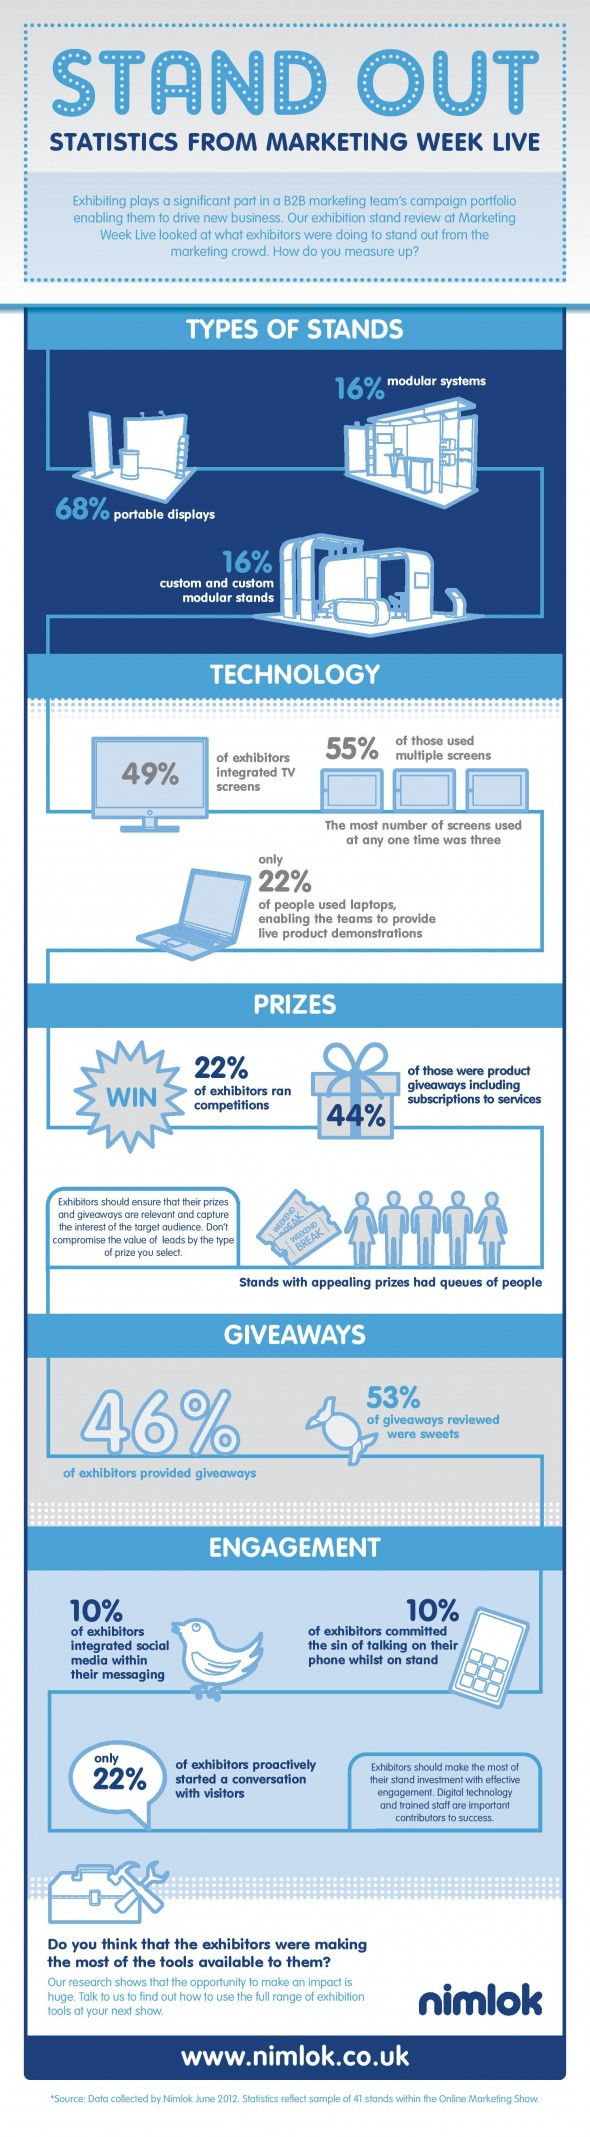 marketing-week-live-exhibition-stand-infographic_5044bb5b66b5a